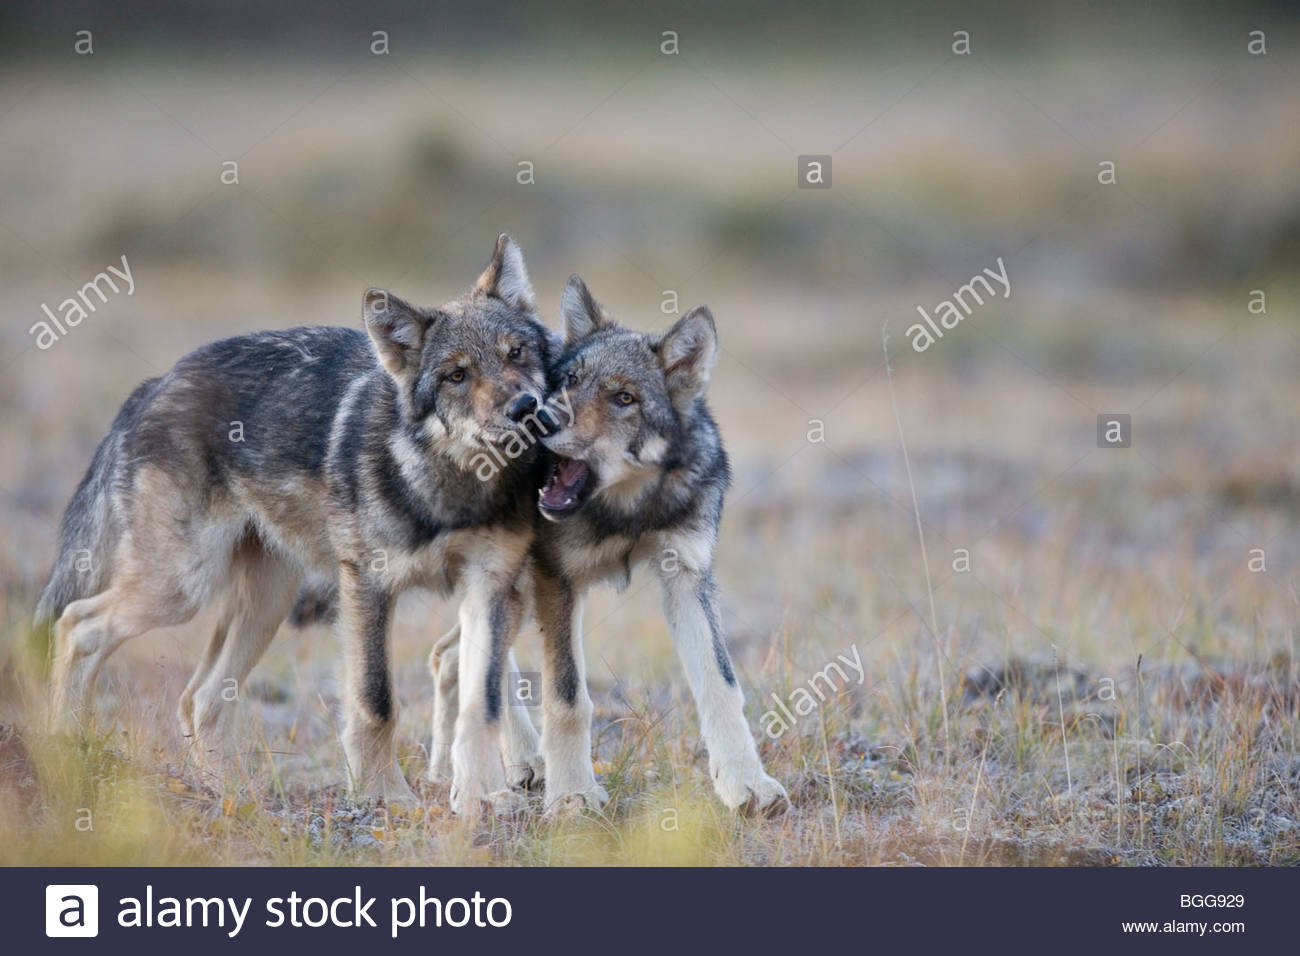 Wolf, Canis lupus, pups of Grant Creek pack play, alpine tundra, autumn, Denali National Park, Alaska, horizontal, - Stock Image